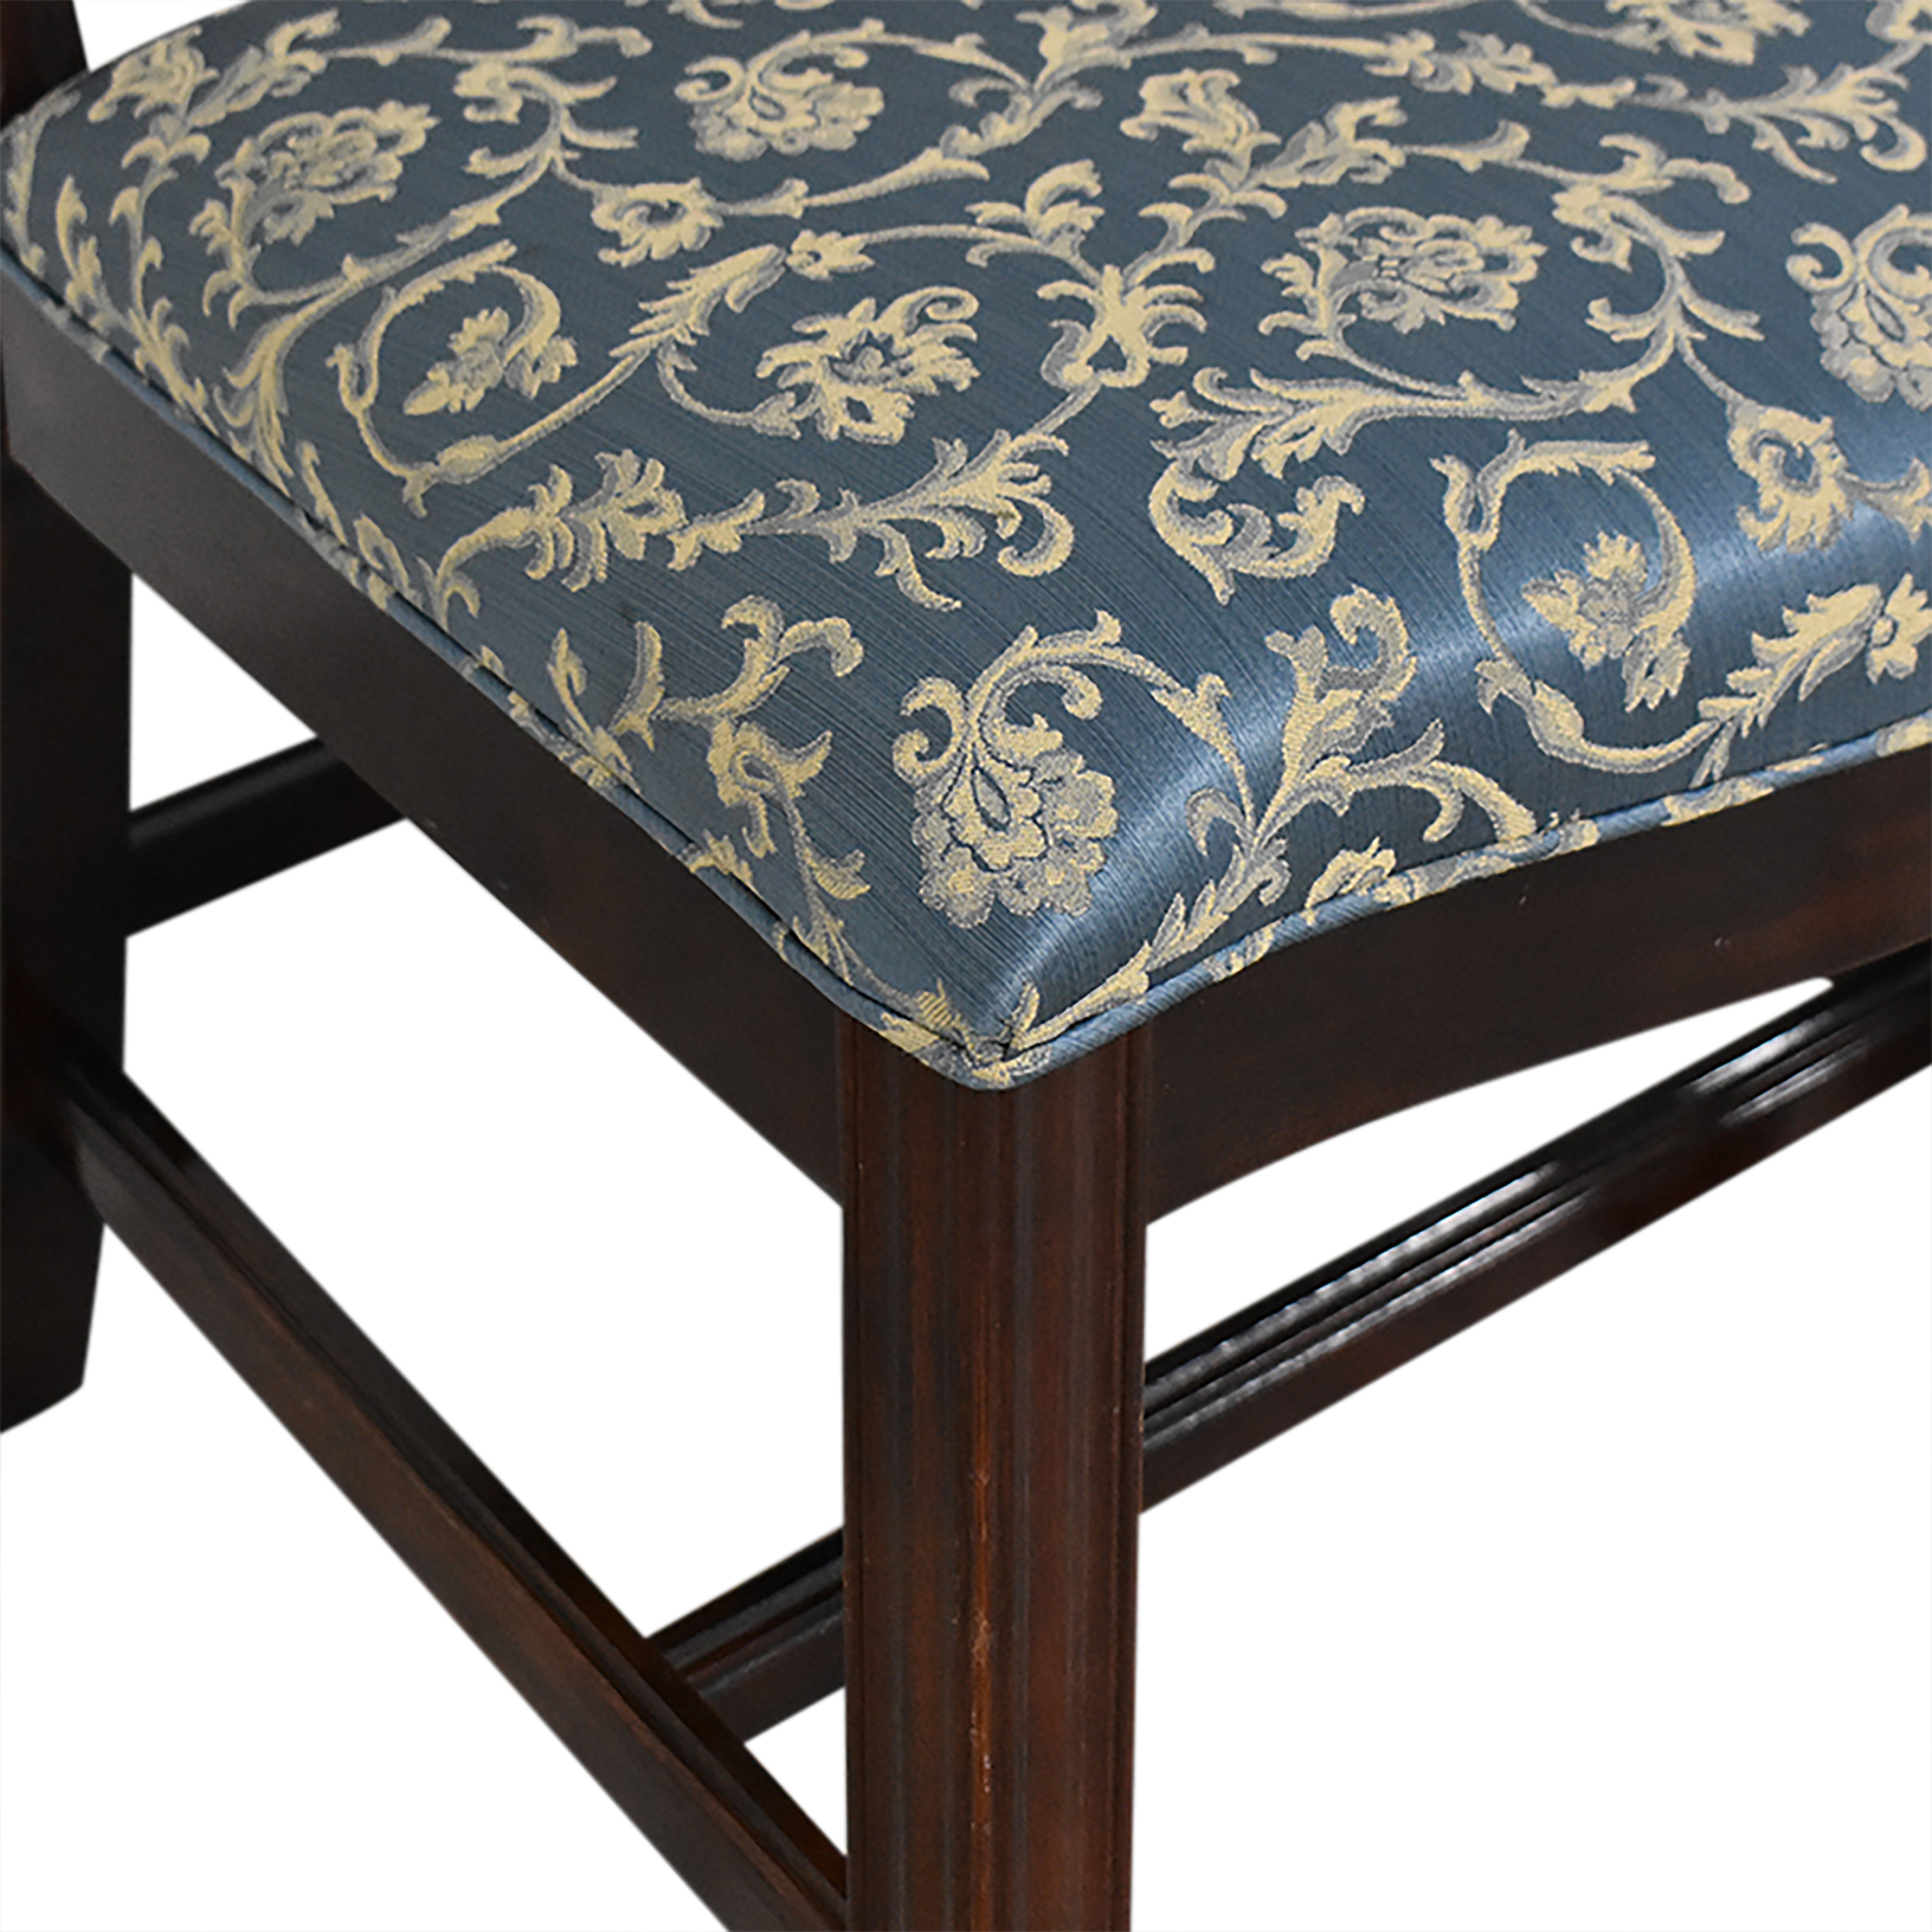 Thomasville Thomasville Chippendale Style Dining Chairs dark brown & blue